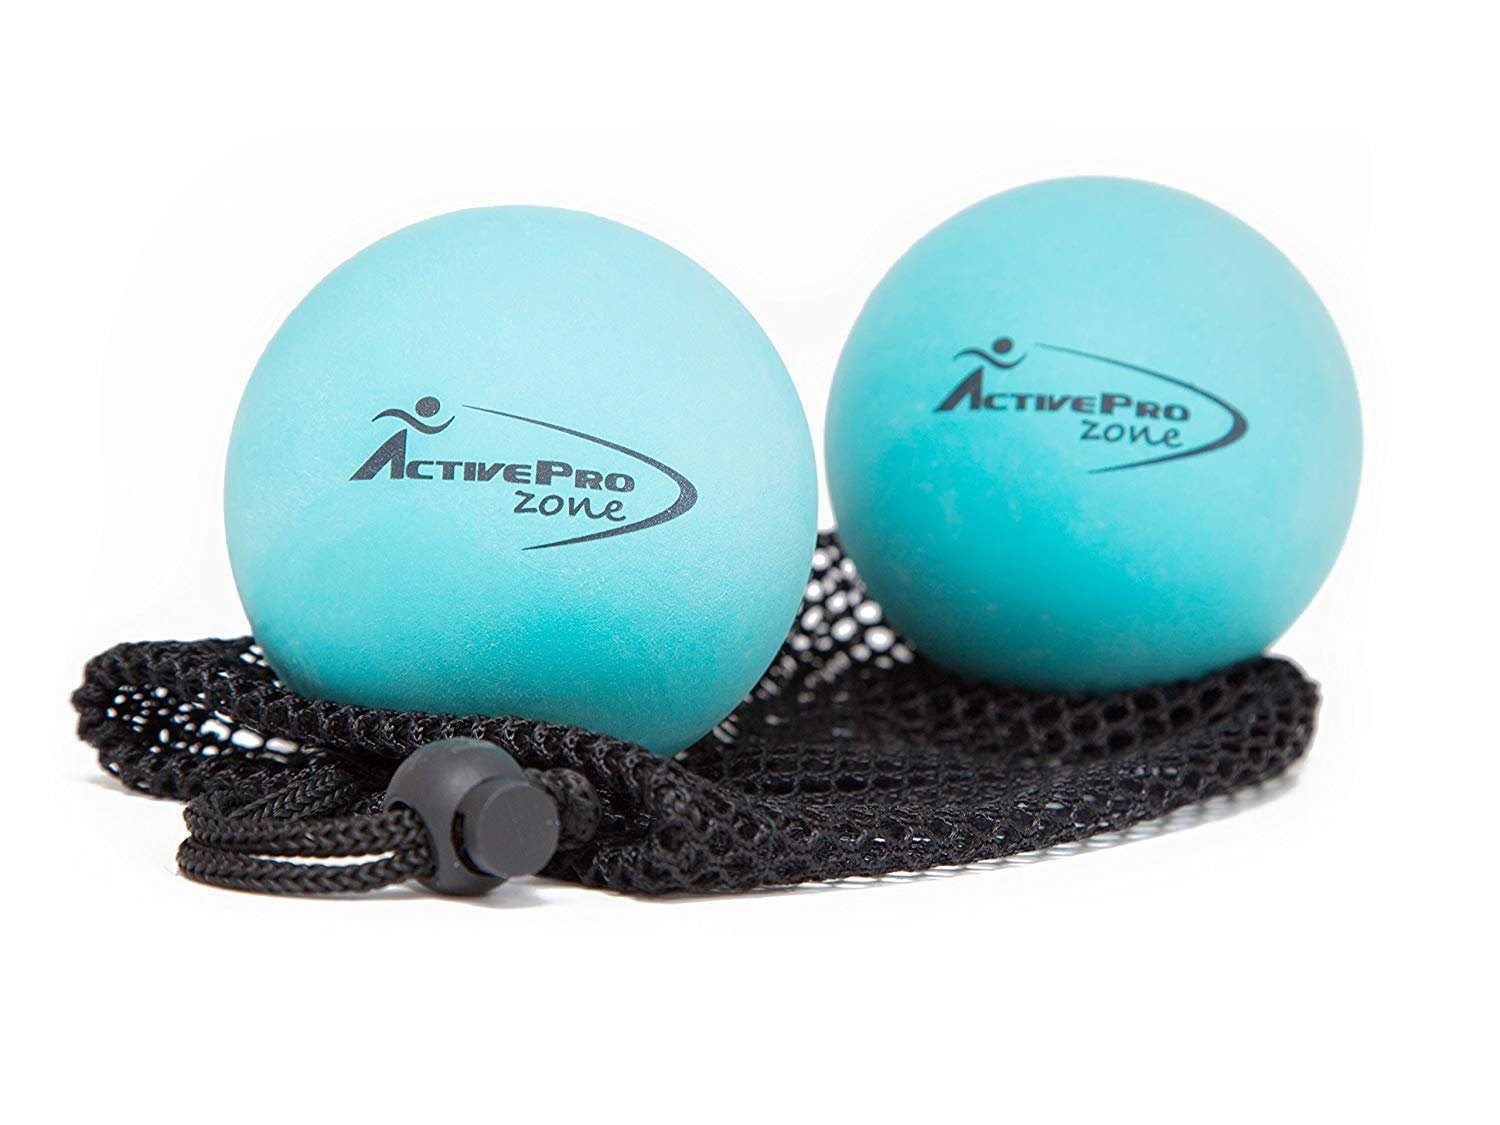 ActiveProZone Therapy Massage Ball - Instant Muscle Pain Relief. Proven Effective for Myofascial Release, Deep Tissue Pressure, Yoga & Trigger Point Treatments. Set - 2 Extra Firm Balls W/Mesh Bag